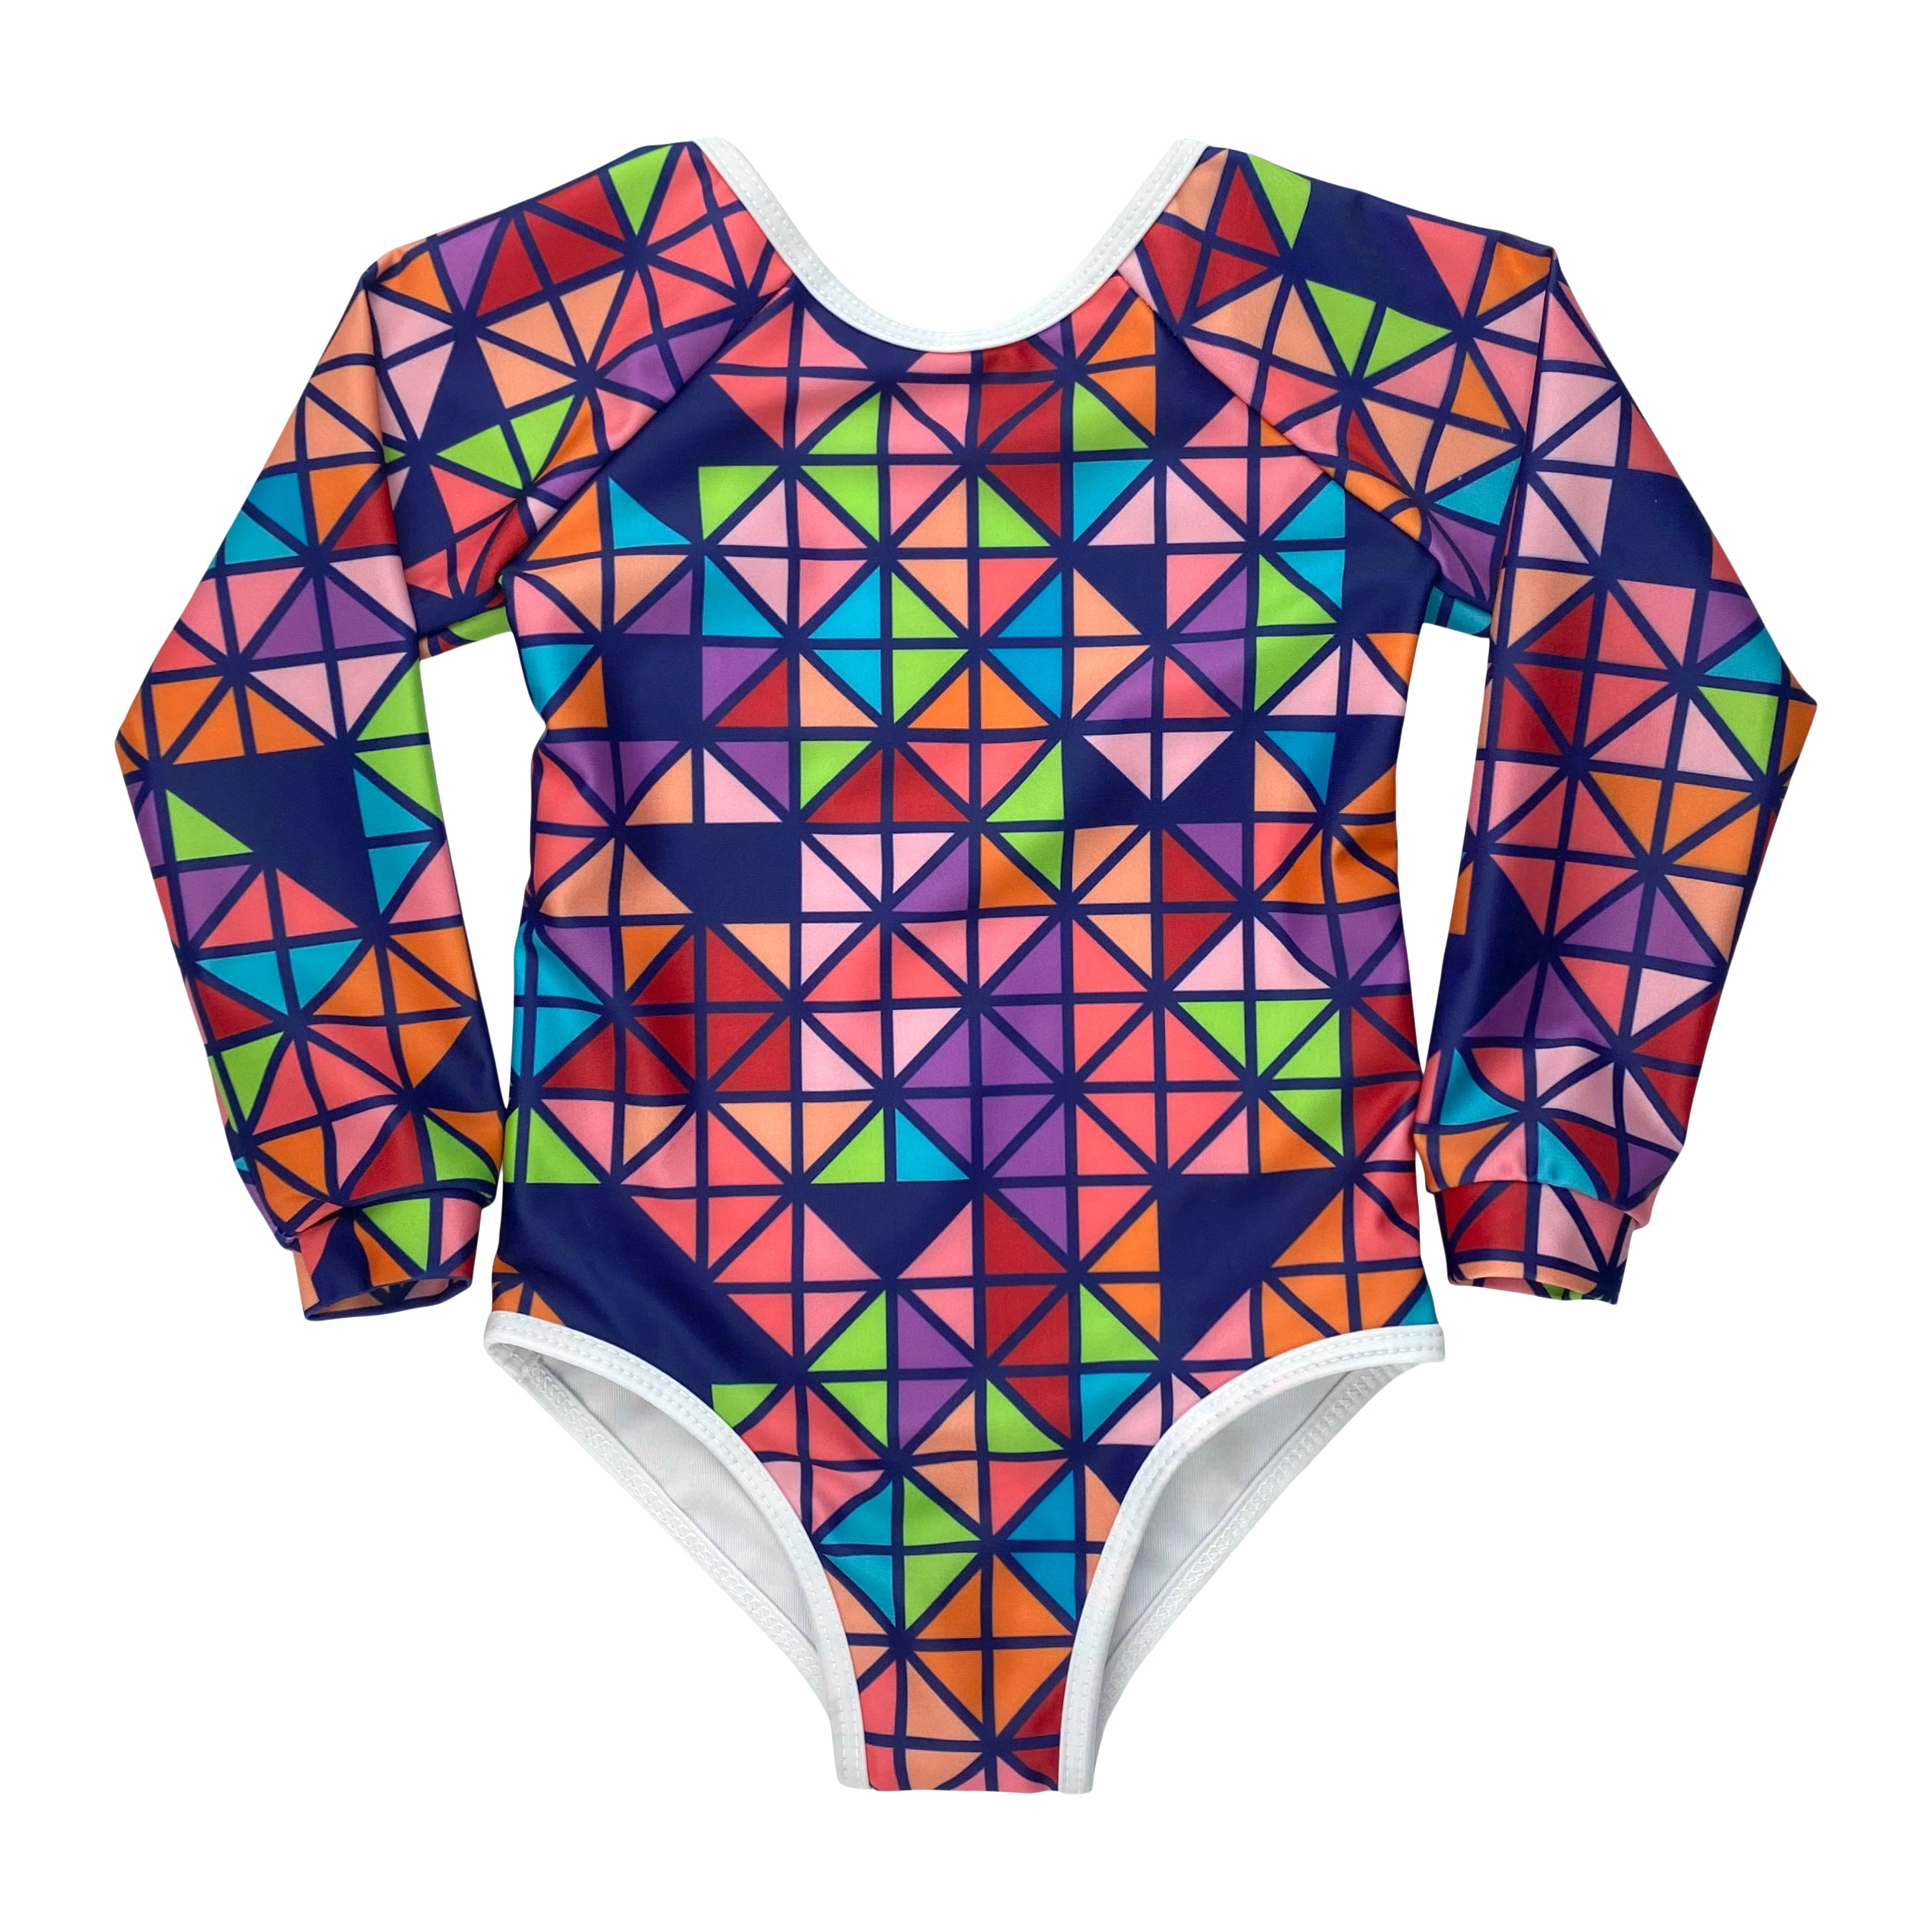 YTCO's no-fuss one-piece swimsuit with long sleeves for kids. This ready-for-any-adventure swimsuit is made from pre and post-consumer materials, ultra soft on the skin, and provides UPF 50+ sun protection. The Trisq print in Navy is a kaleidoscope of colour and geometry.